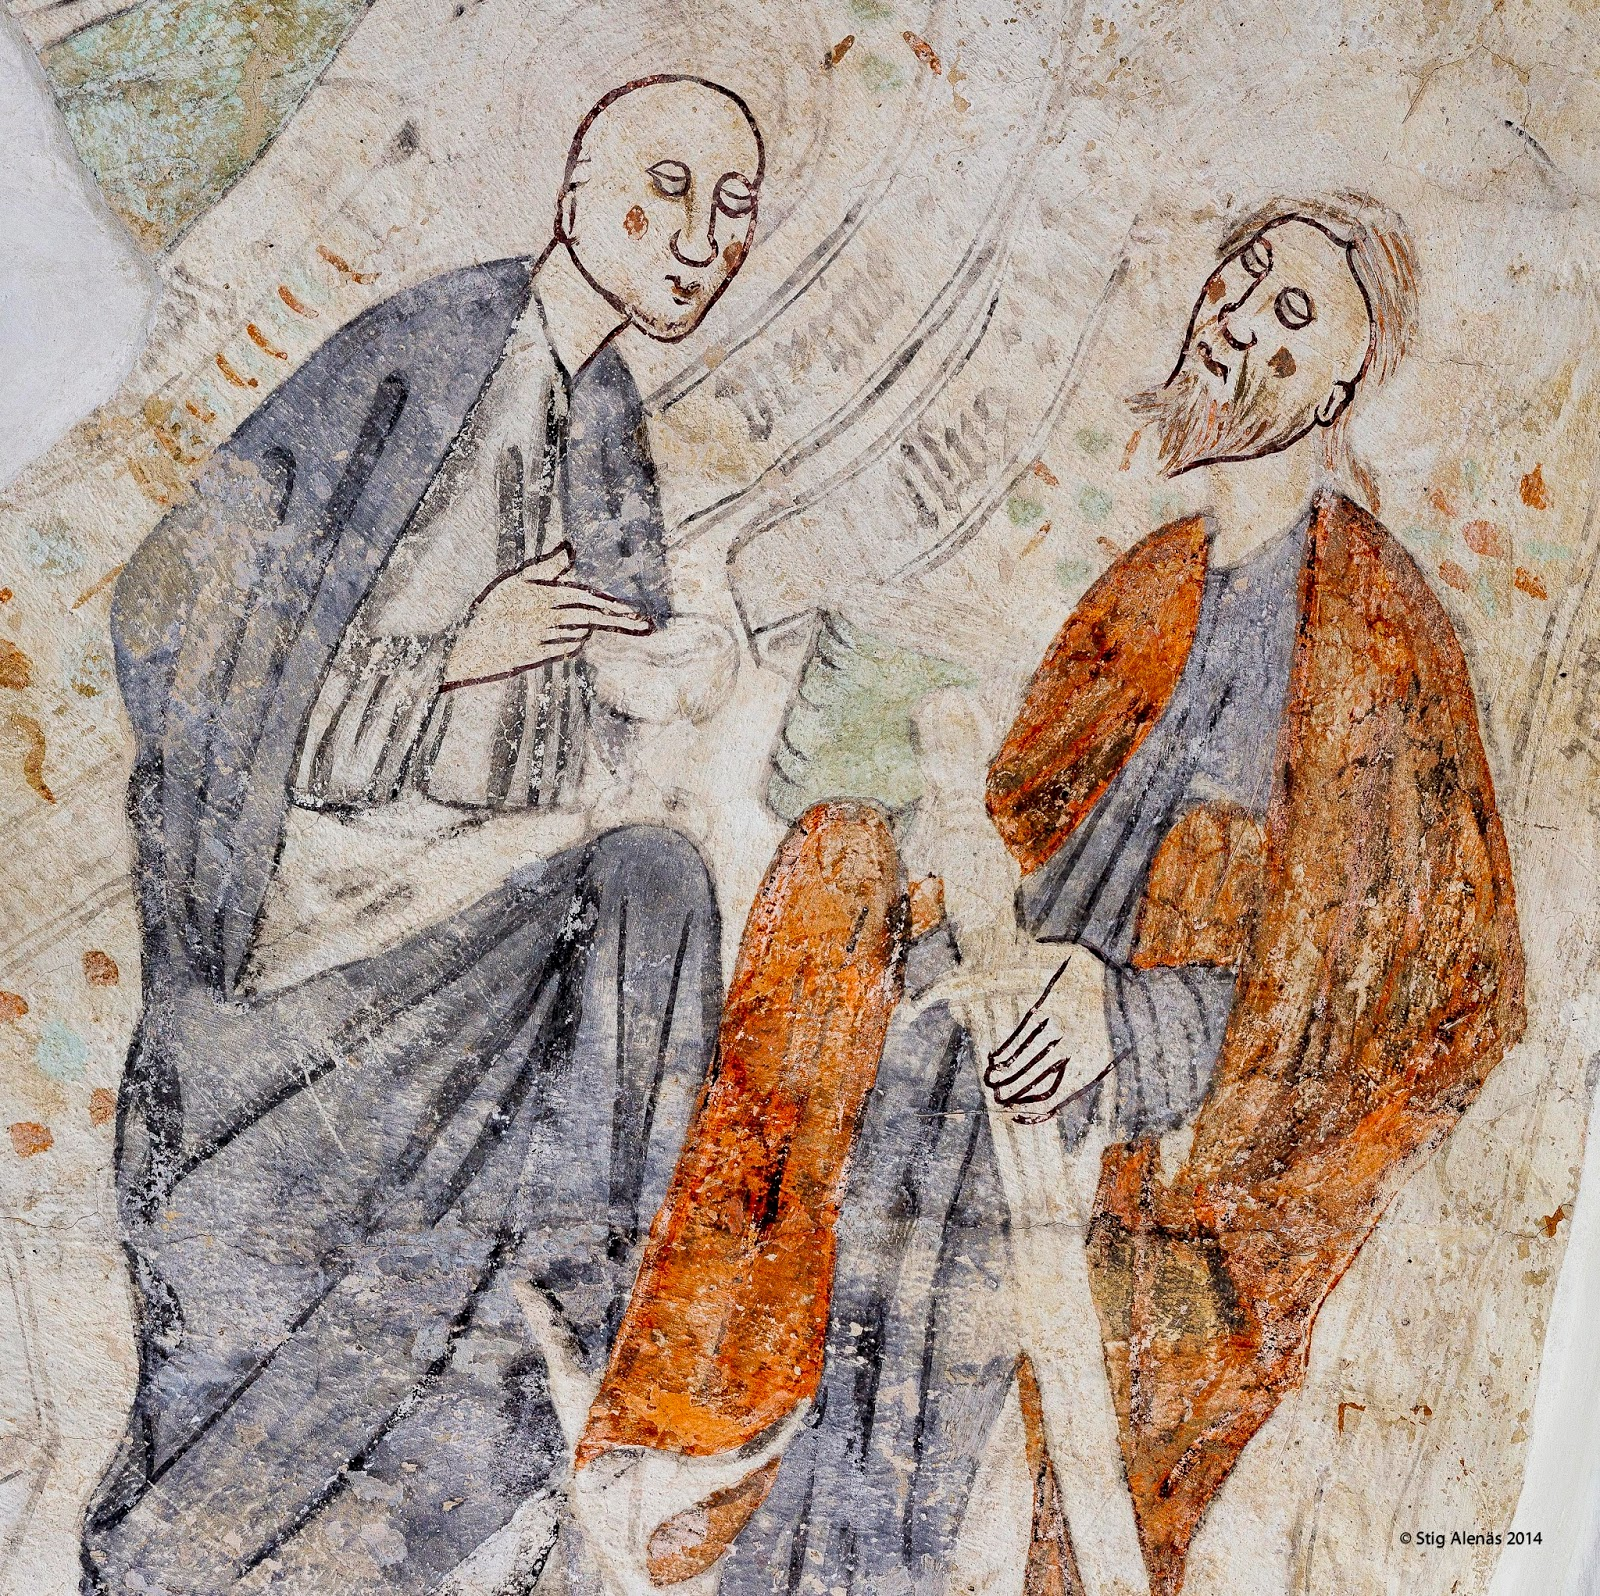 law, barefoot, latin, illustrative, disciples, sword, church, fresco, poison, apostles, https://www.shutterstock.com/image-photo/ilstorp-sweden-may-05-2014-st-484576408